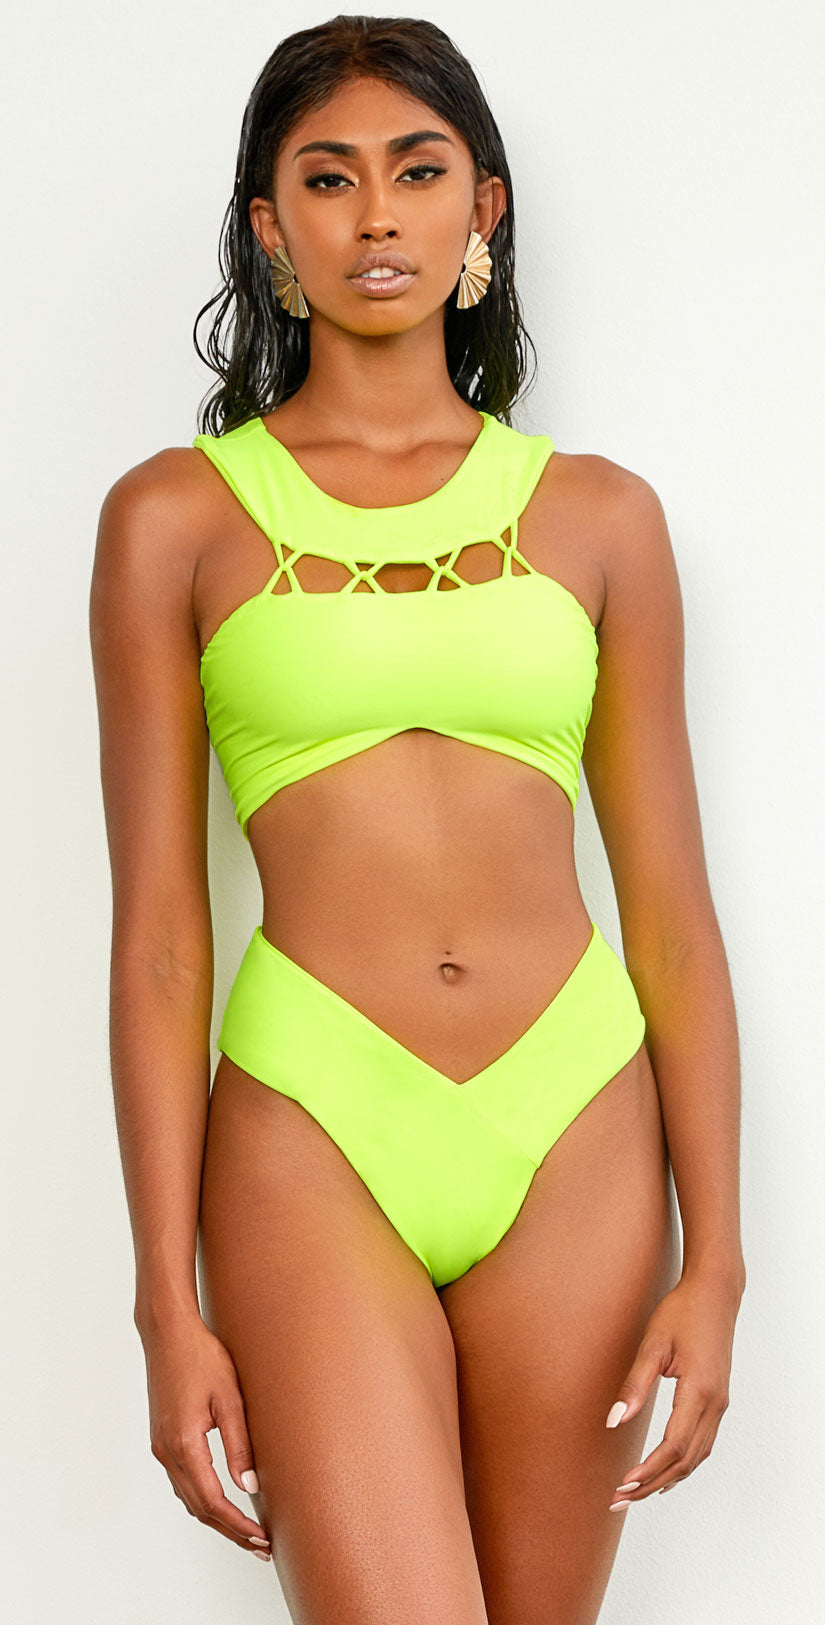 Keva J Neon Lights Bali Bottom in Neon Yellow